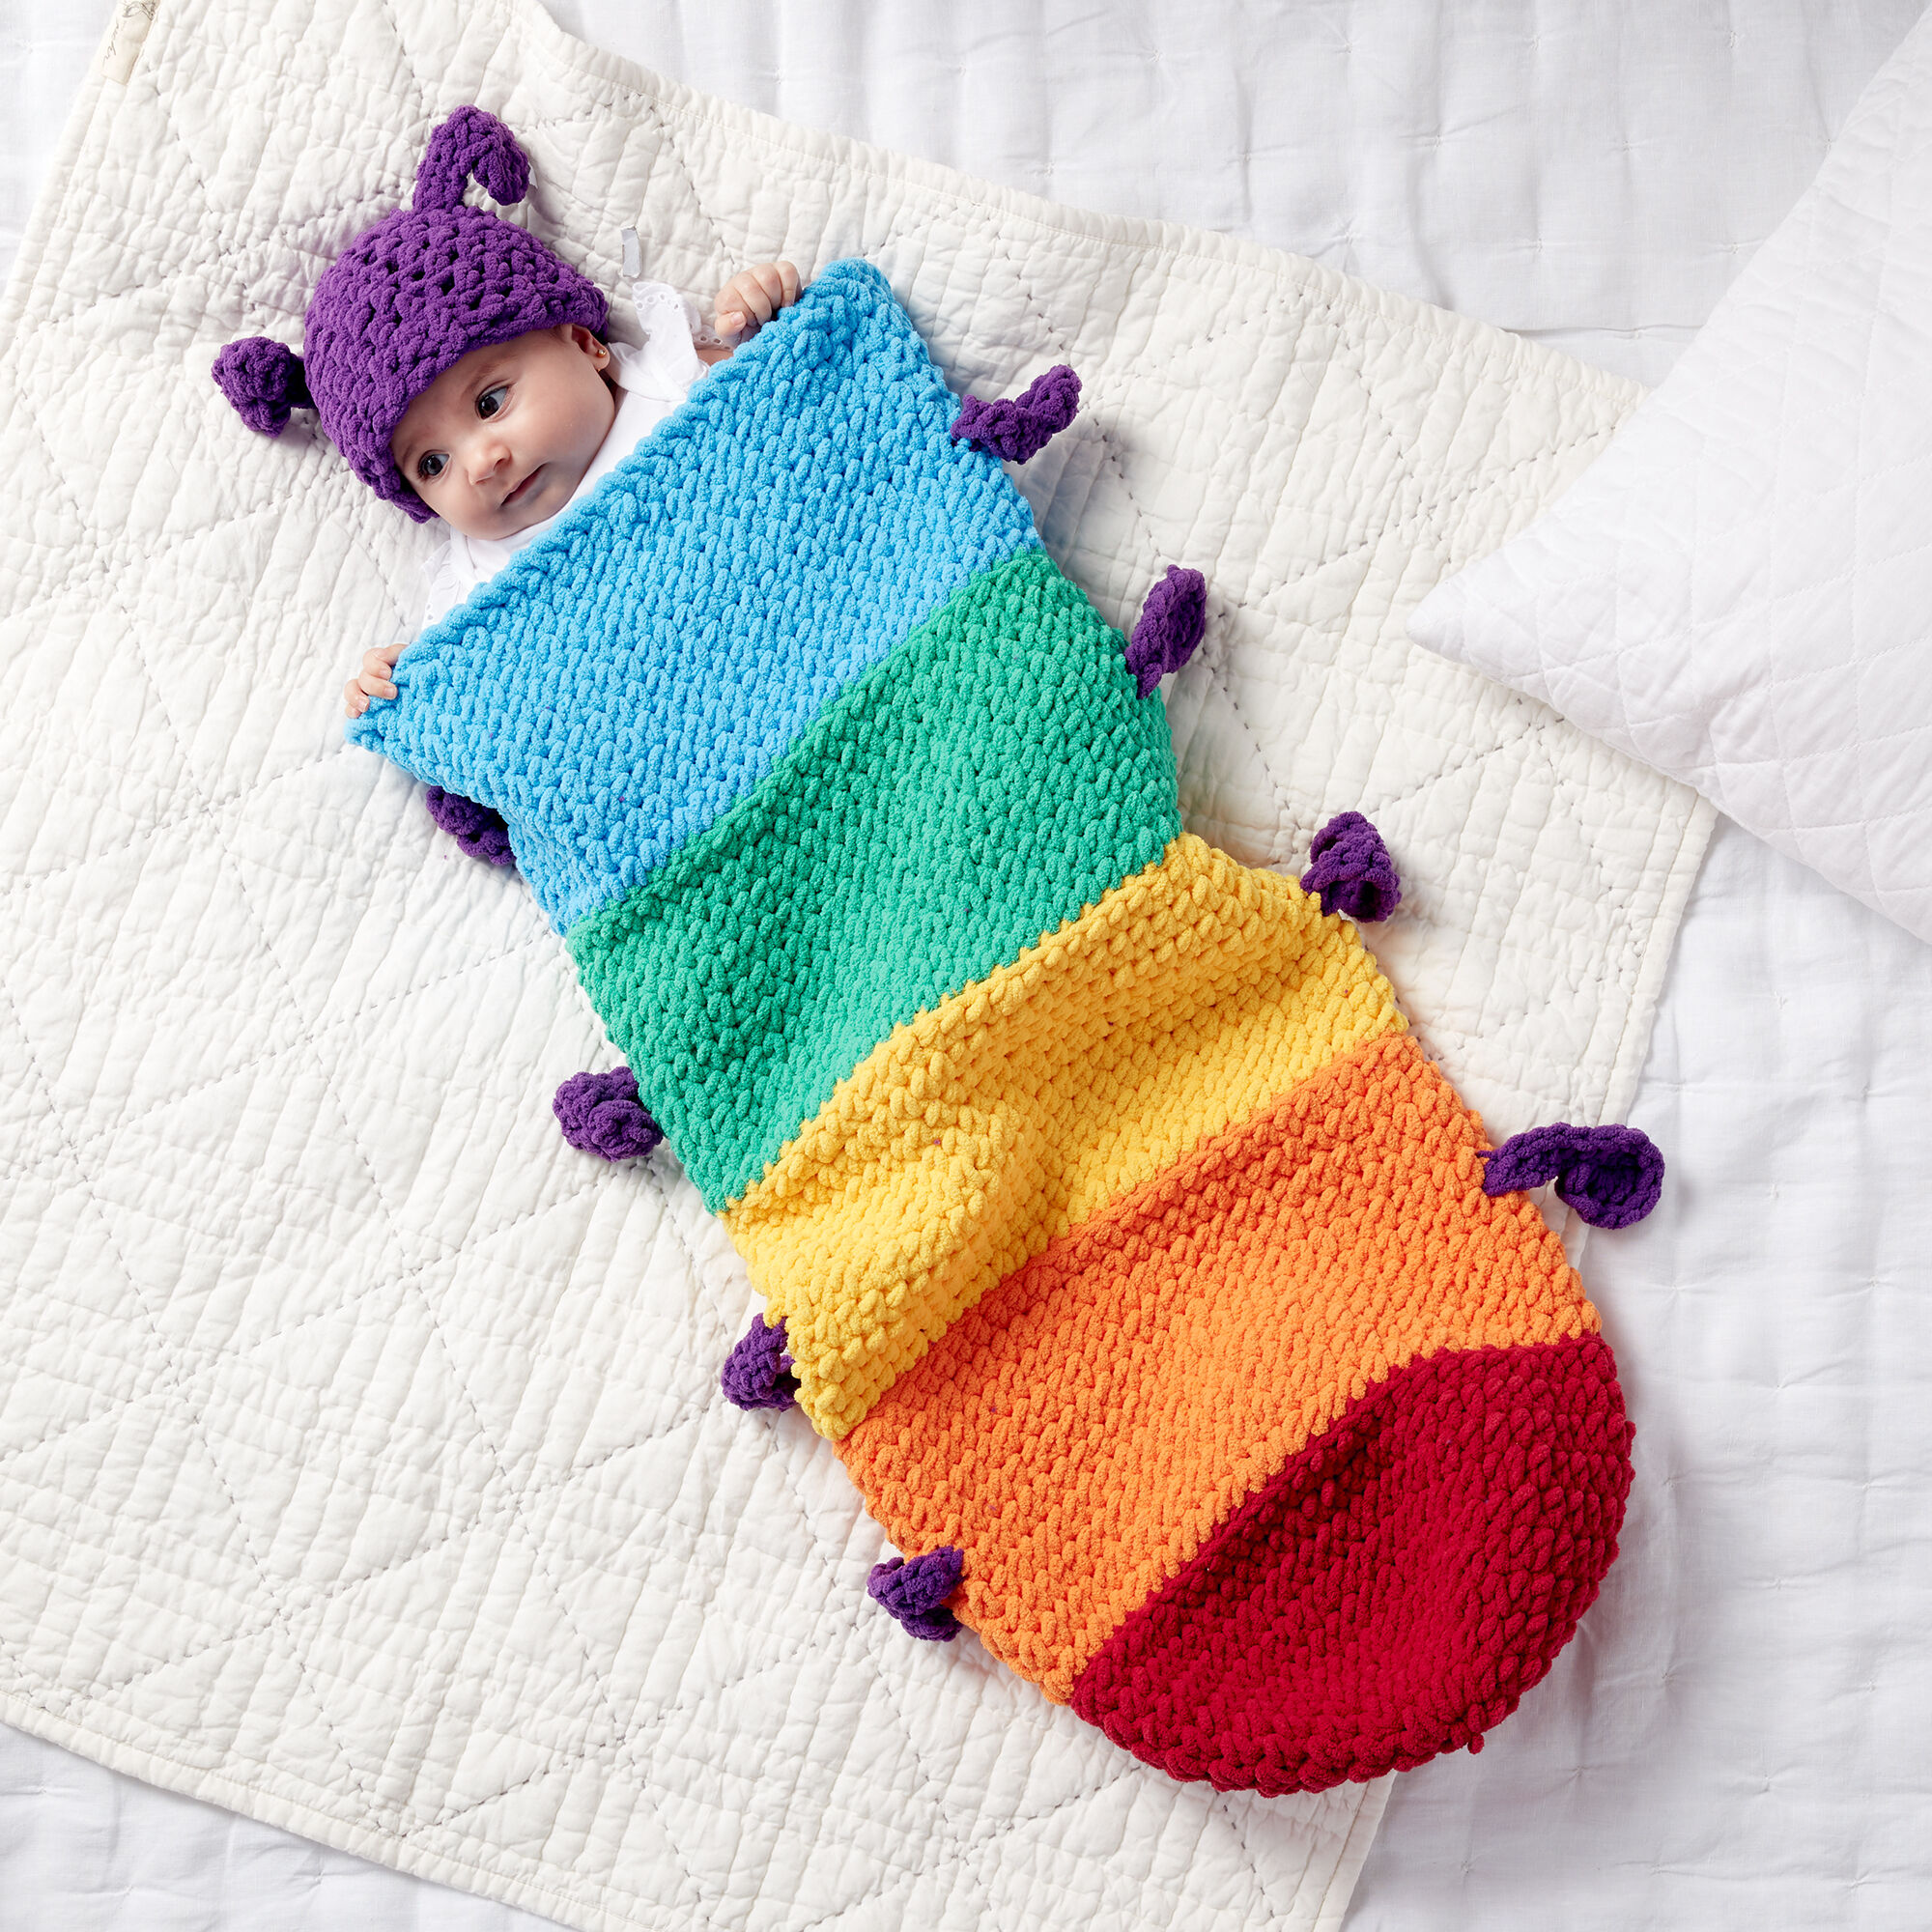 Crochet a Rainbow Caterpillar Snuggle Sleepsack ... Makes An Adorable Baby Gift!